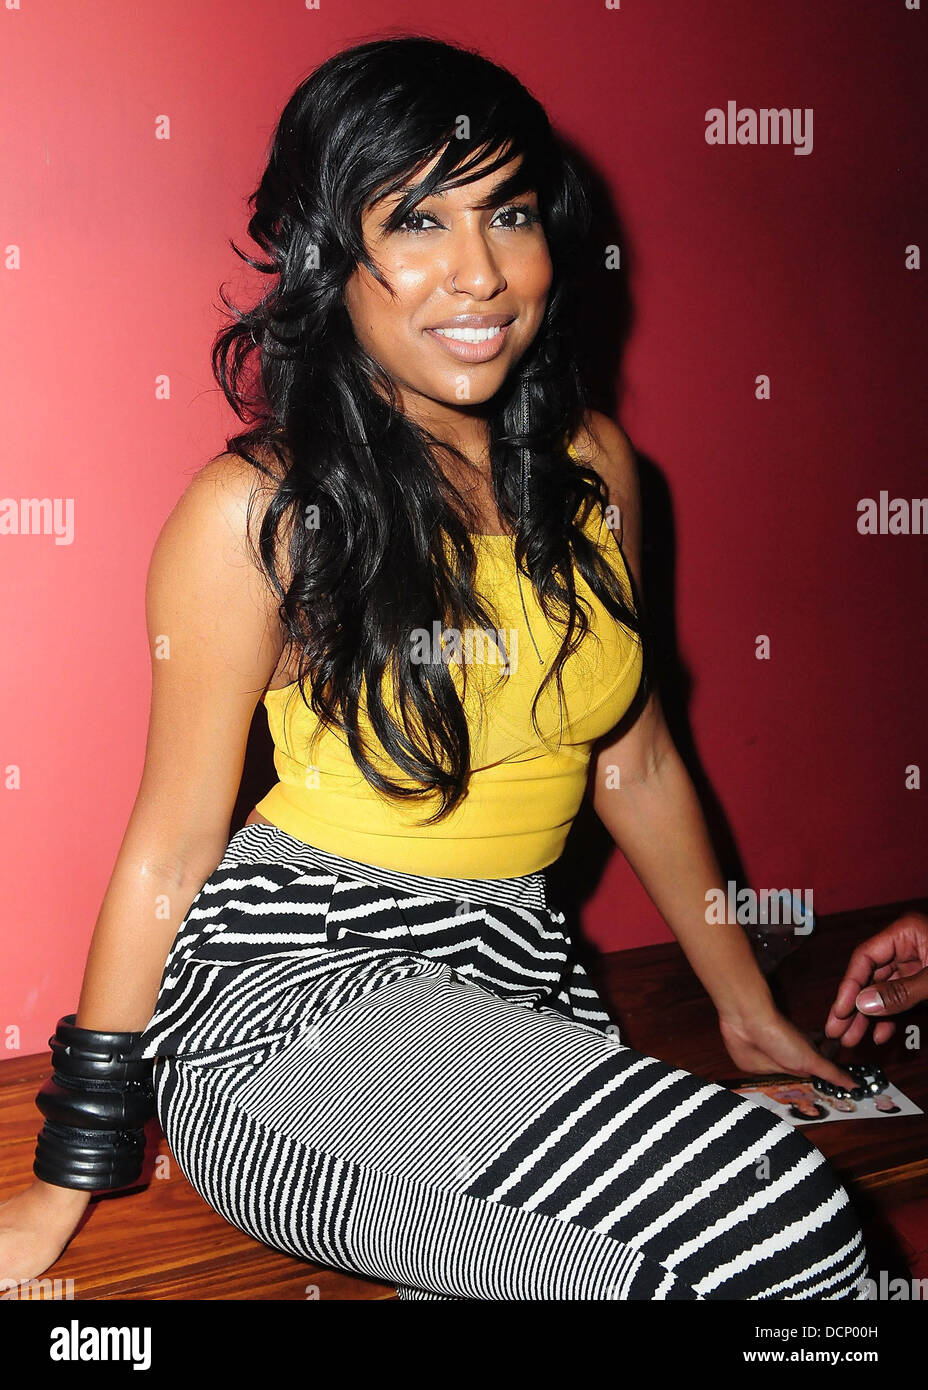 Melanie Fiona at the Gulfstream Casino during the inaugural 'Walk A Mile In Her Shoes Cocktail Party' Hallandale - Stock Image